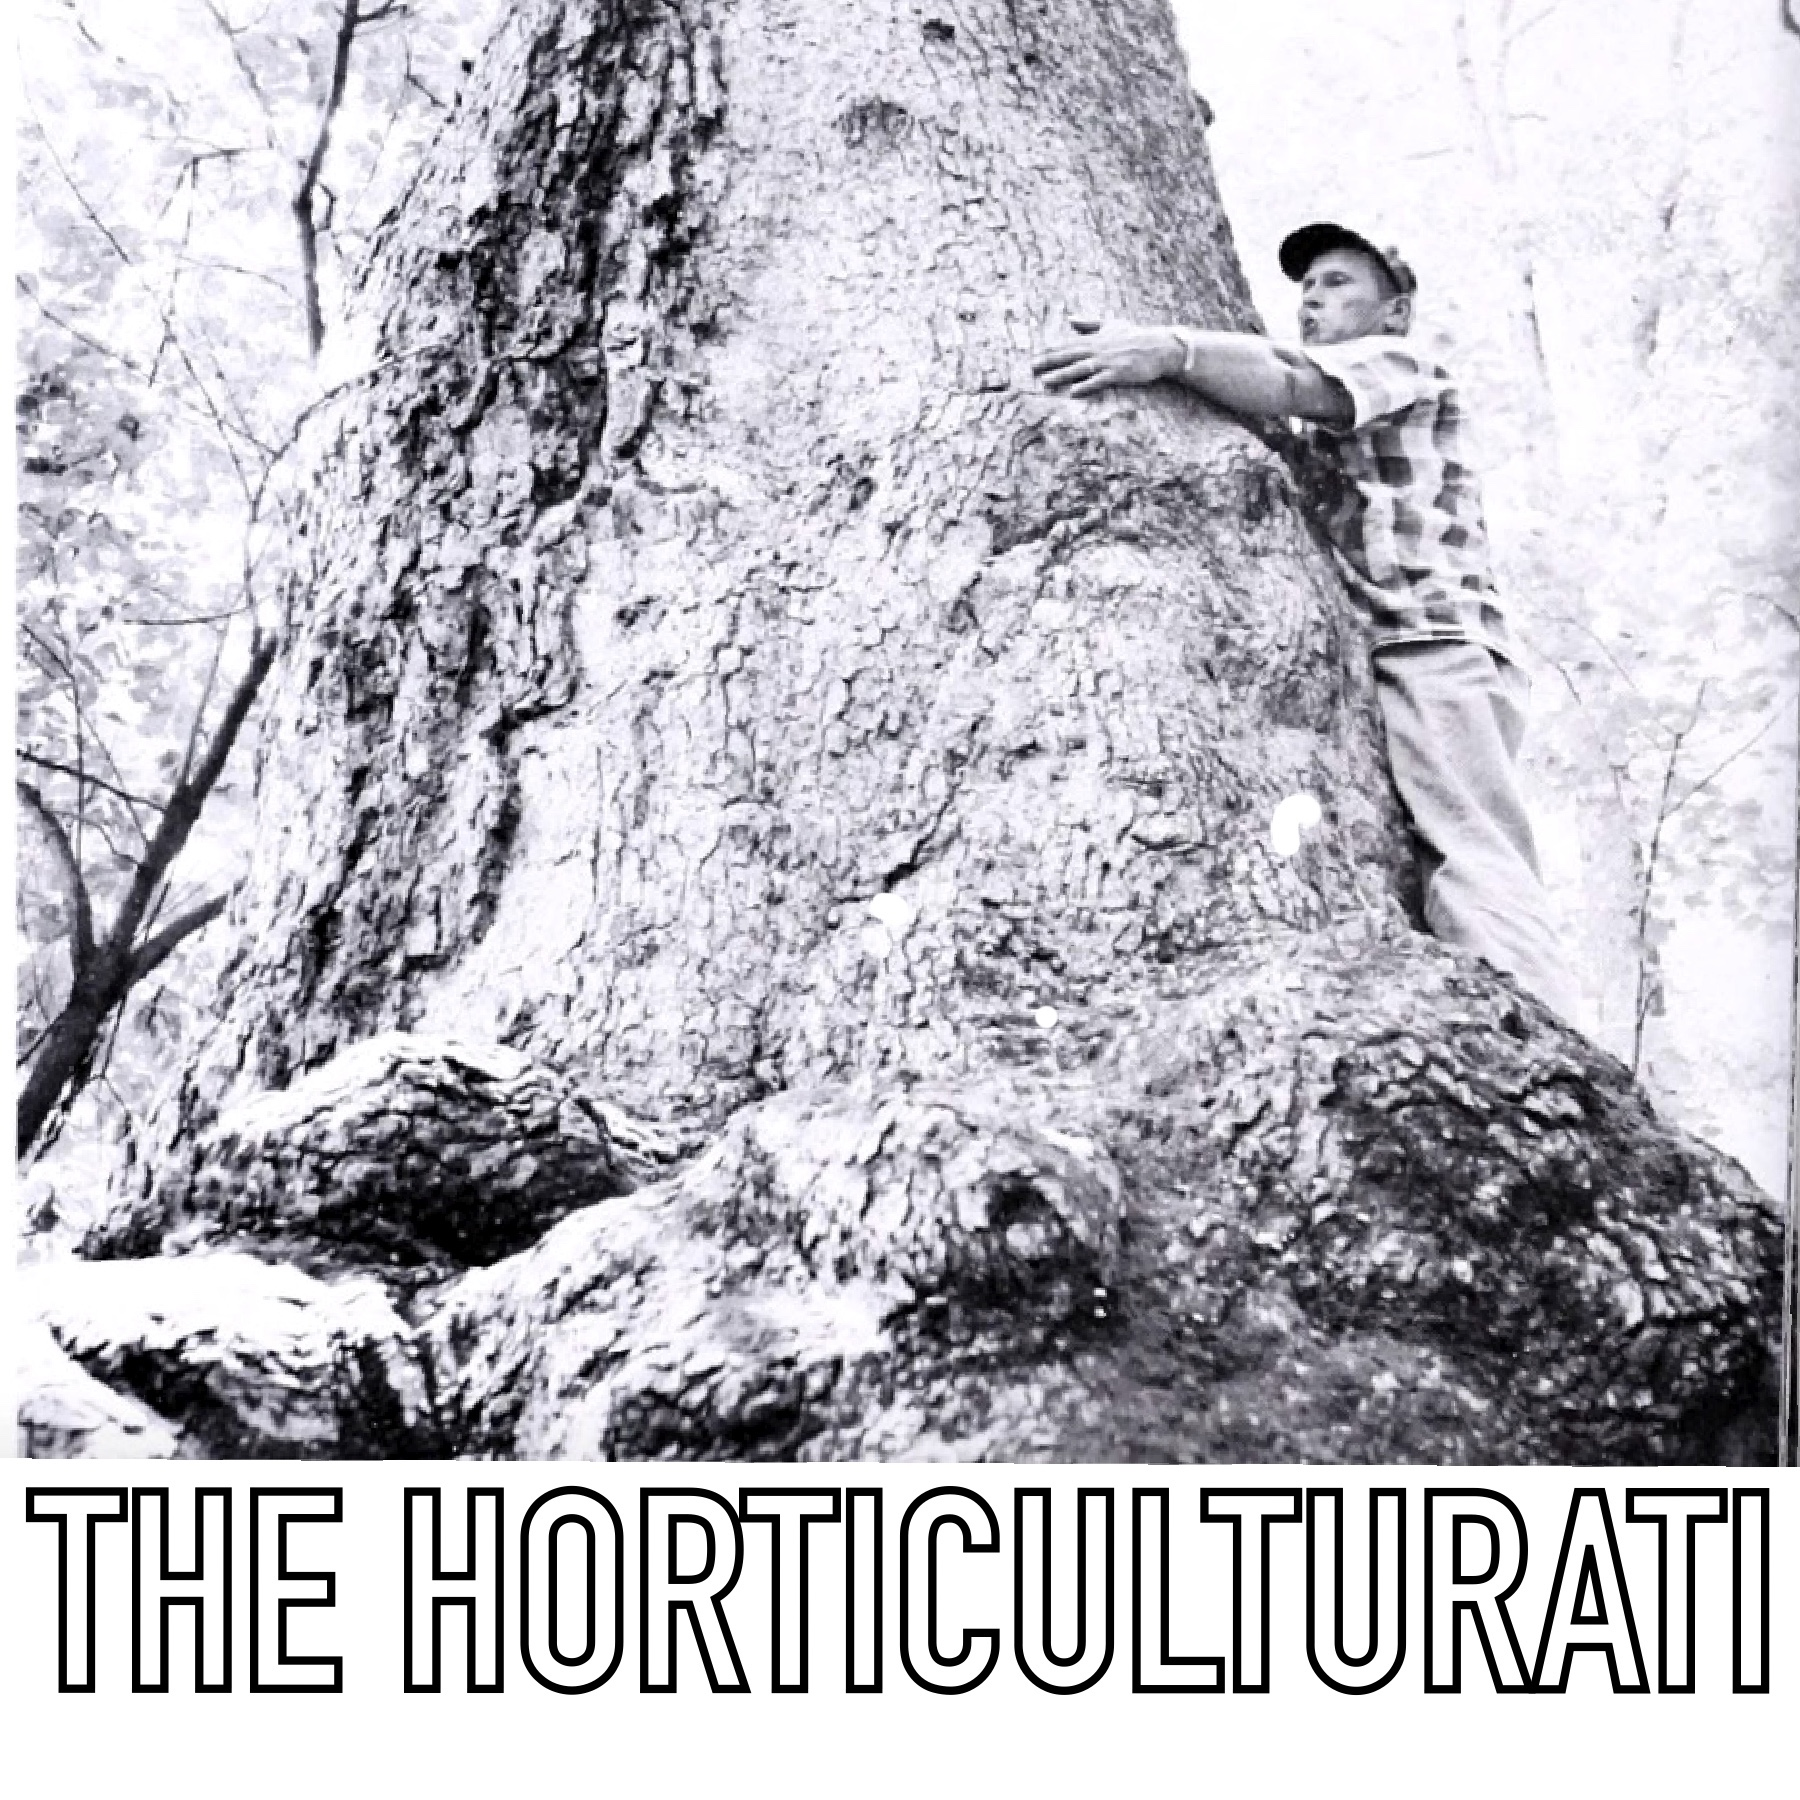 Introducing The Horticulturati: New episode Feb 7!